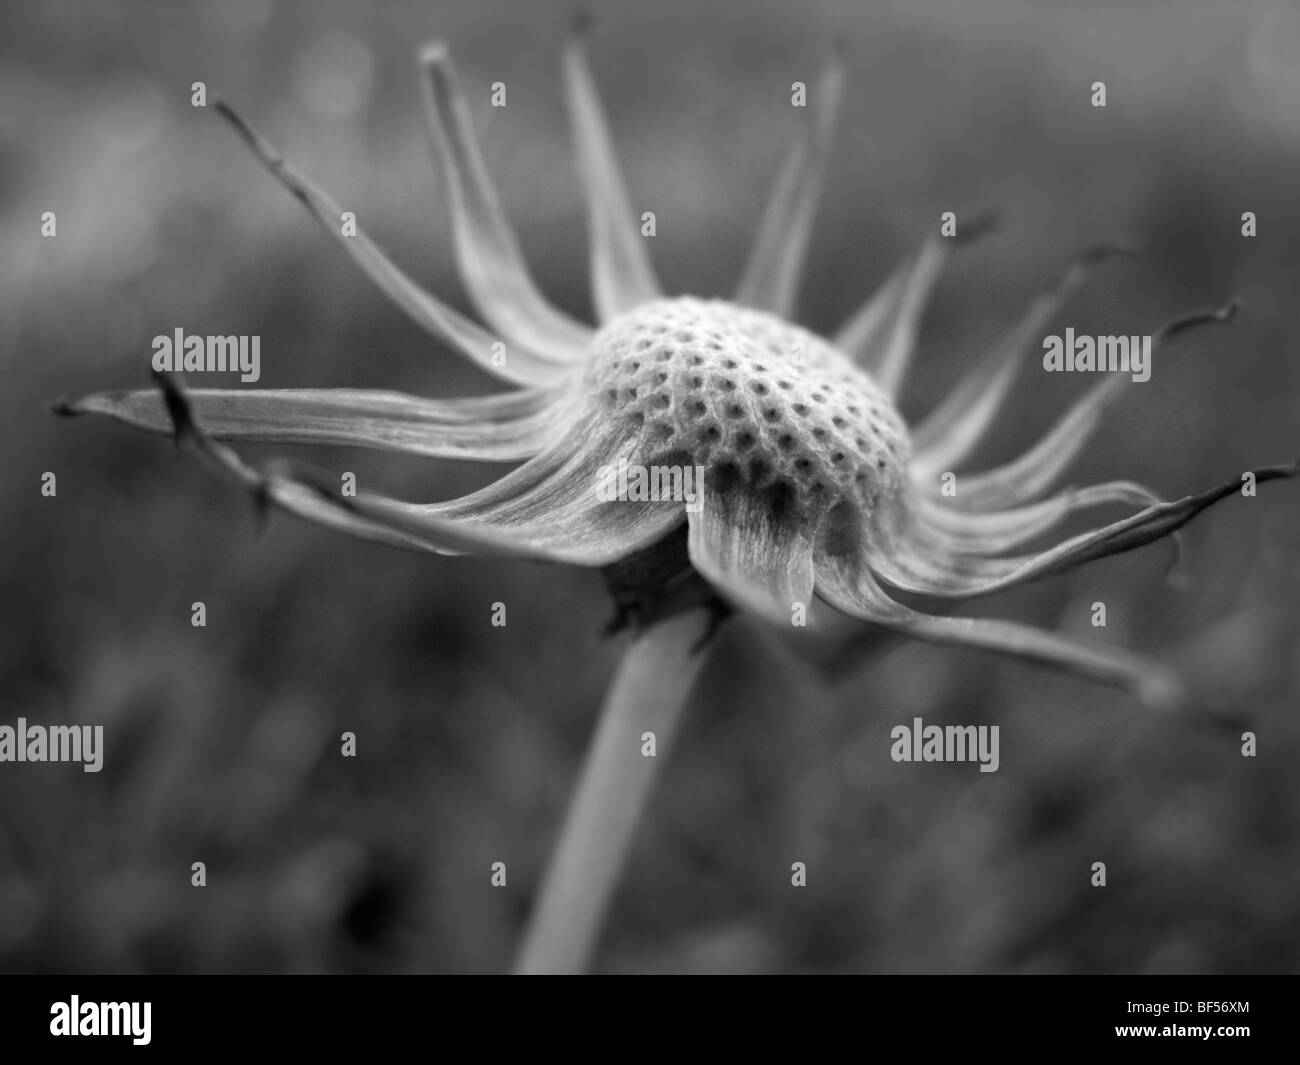 close up image of flower - Stock Image